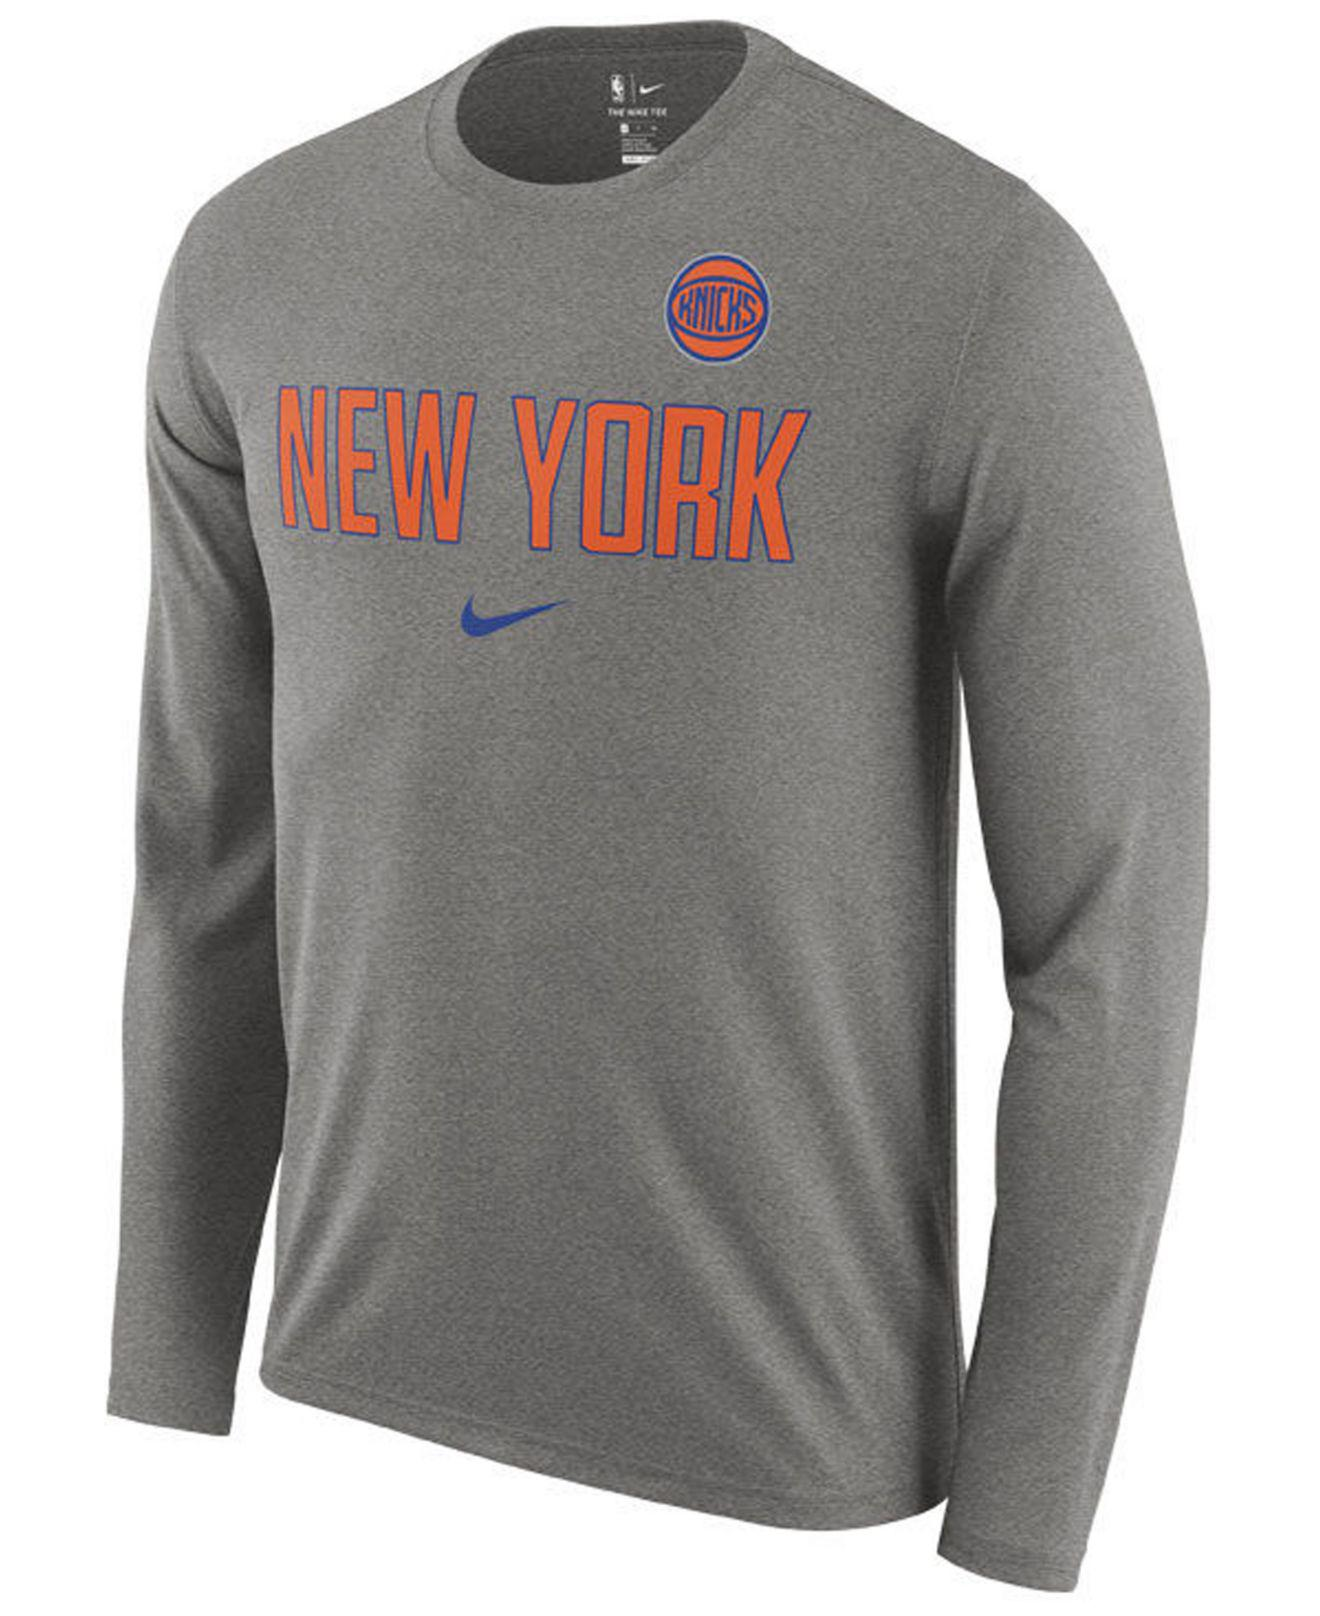 Nike - Gray New York Knicks Essential Facility Long Sleeve T-shirt for Men  -. View fullscreen c10f587cb